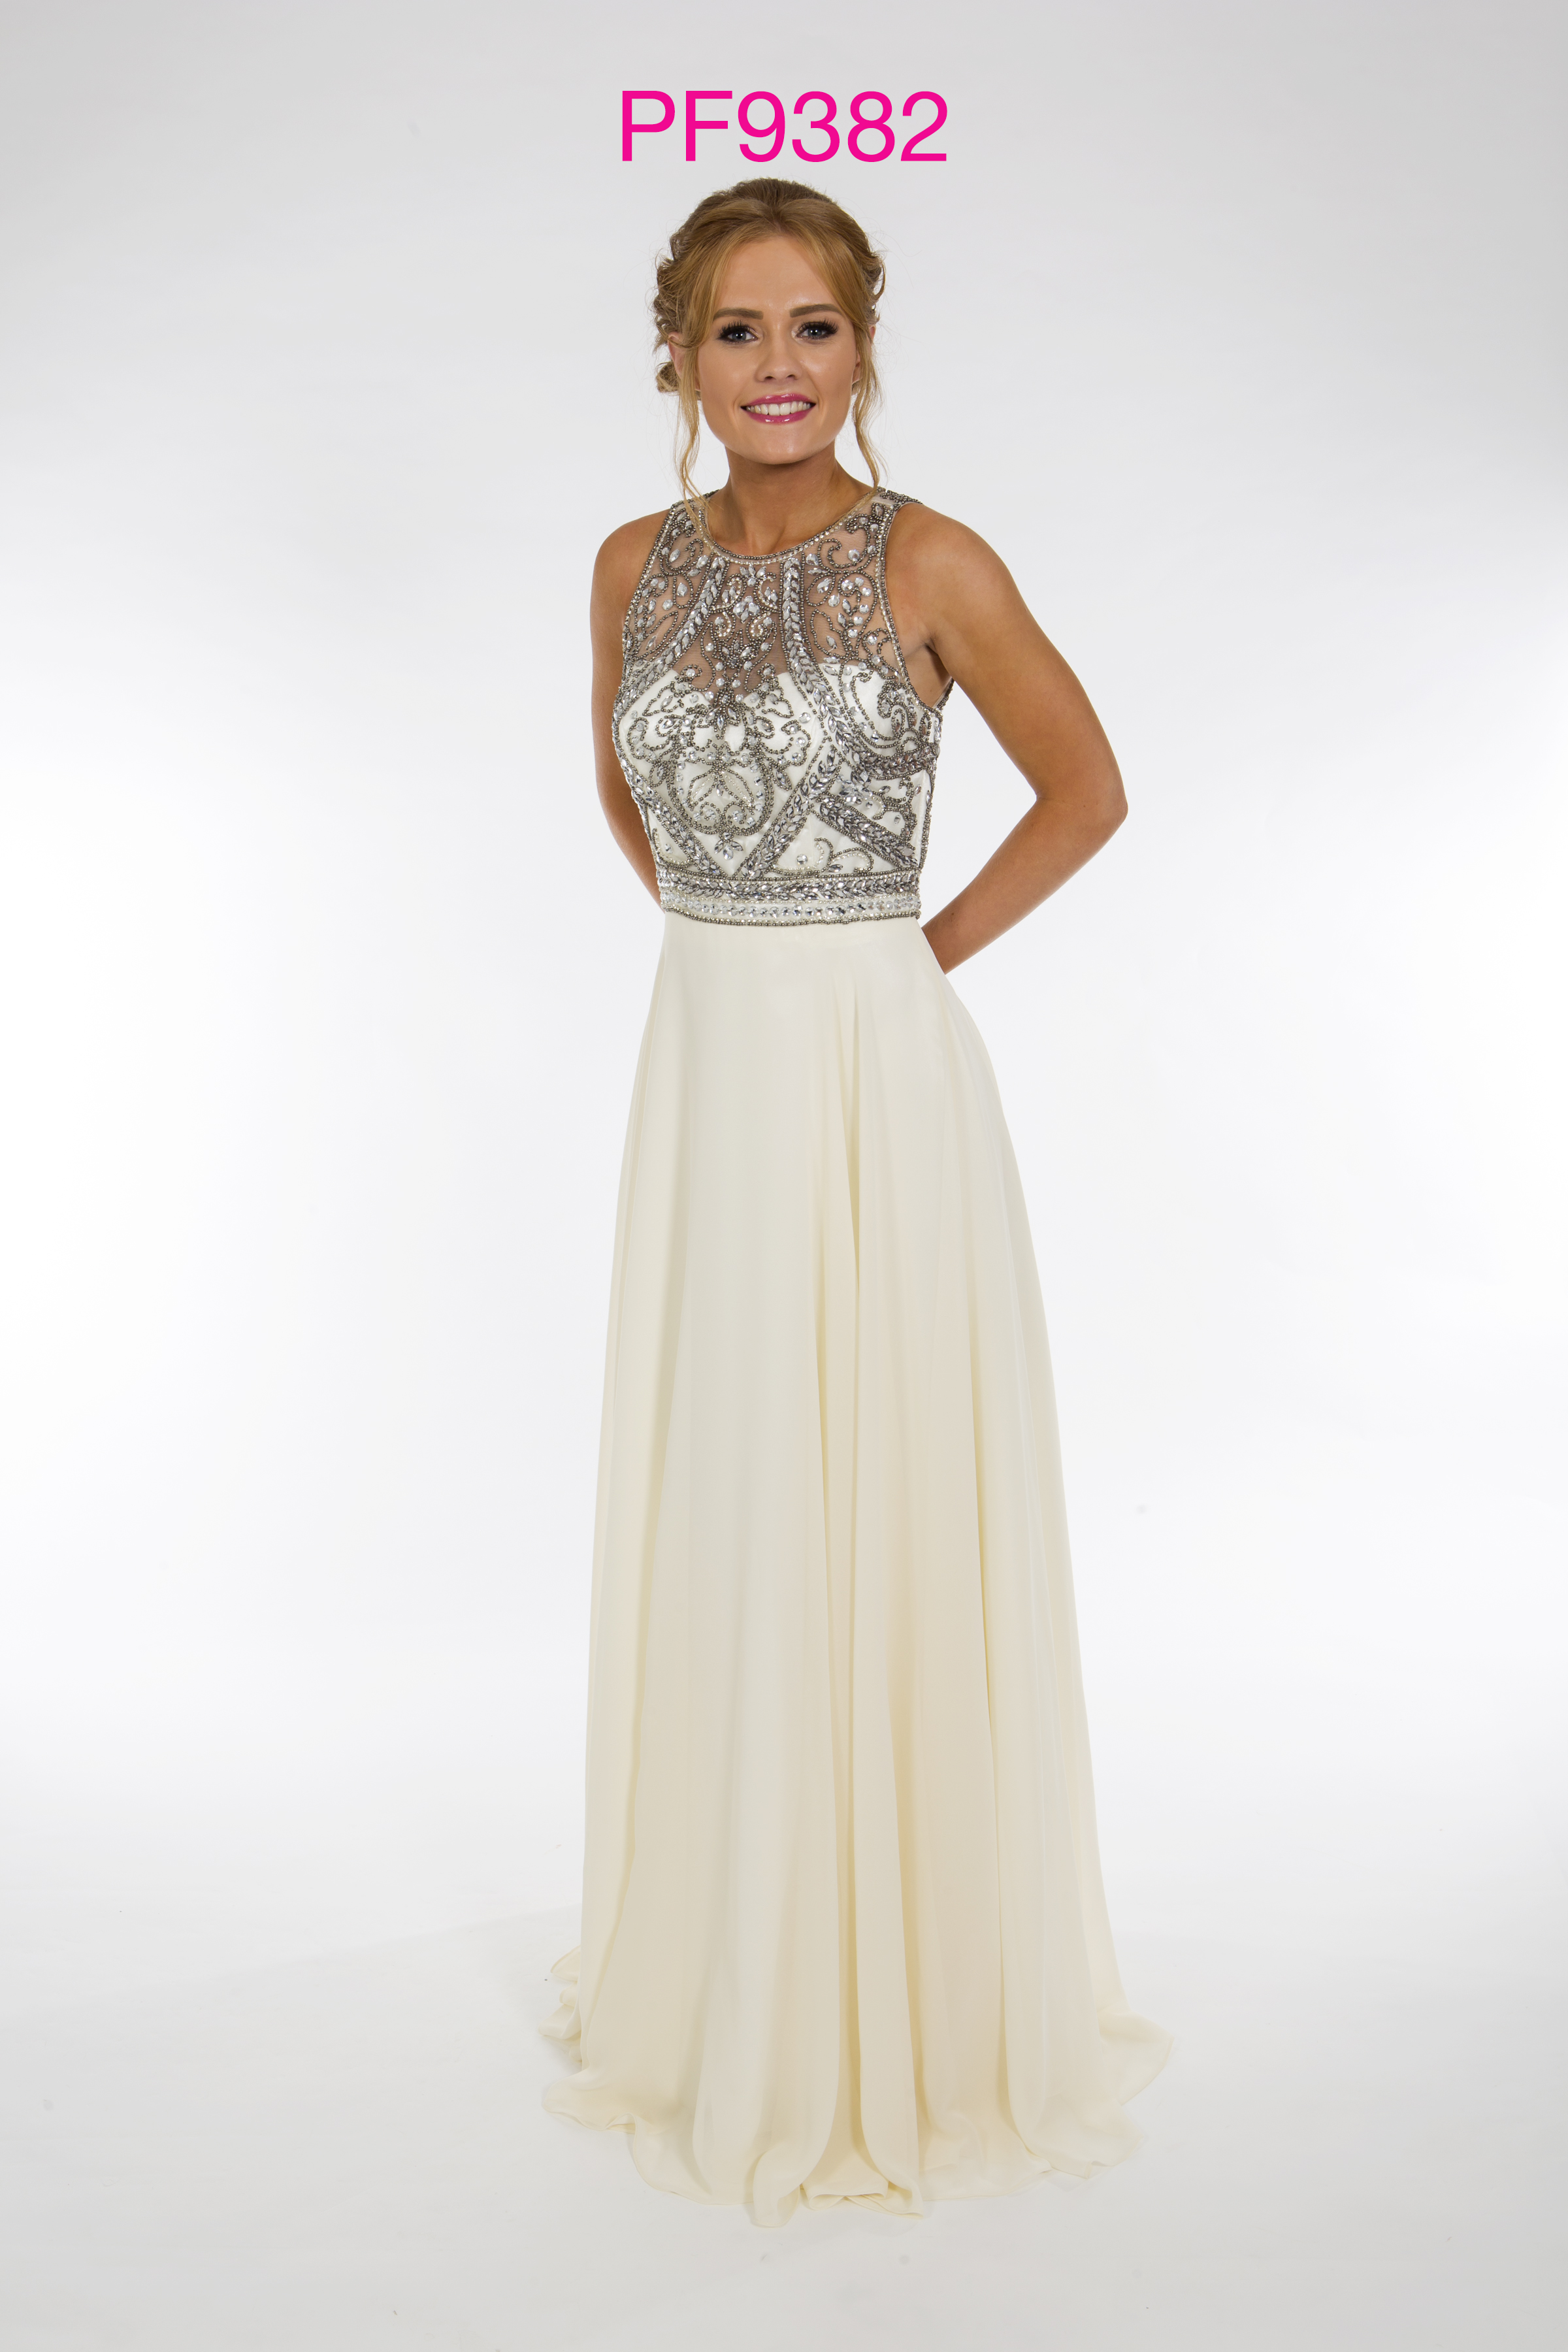 Prom Frocks Pf9382 Champagne Grey Prom Dress Prom Frocks